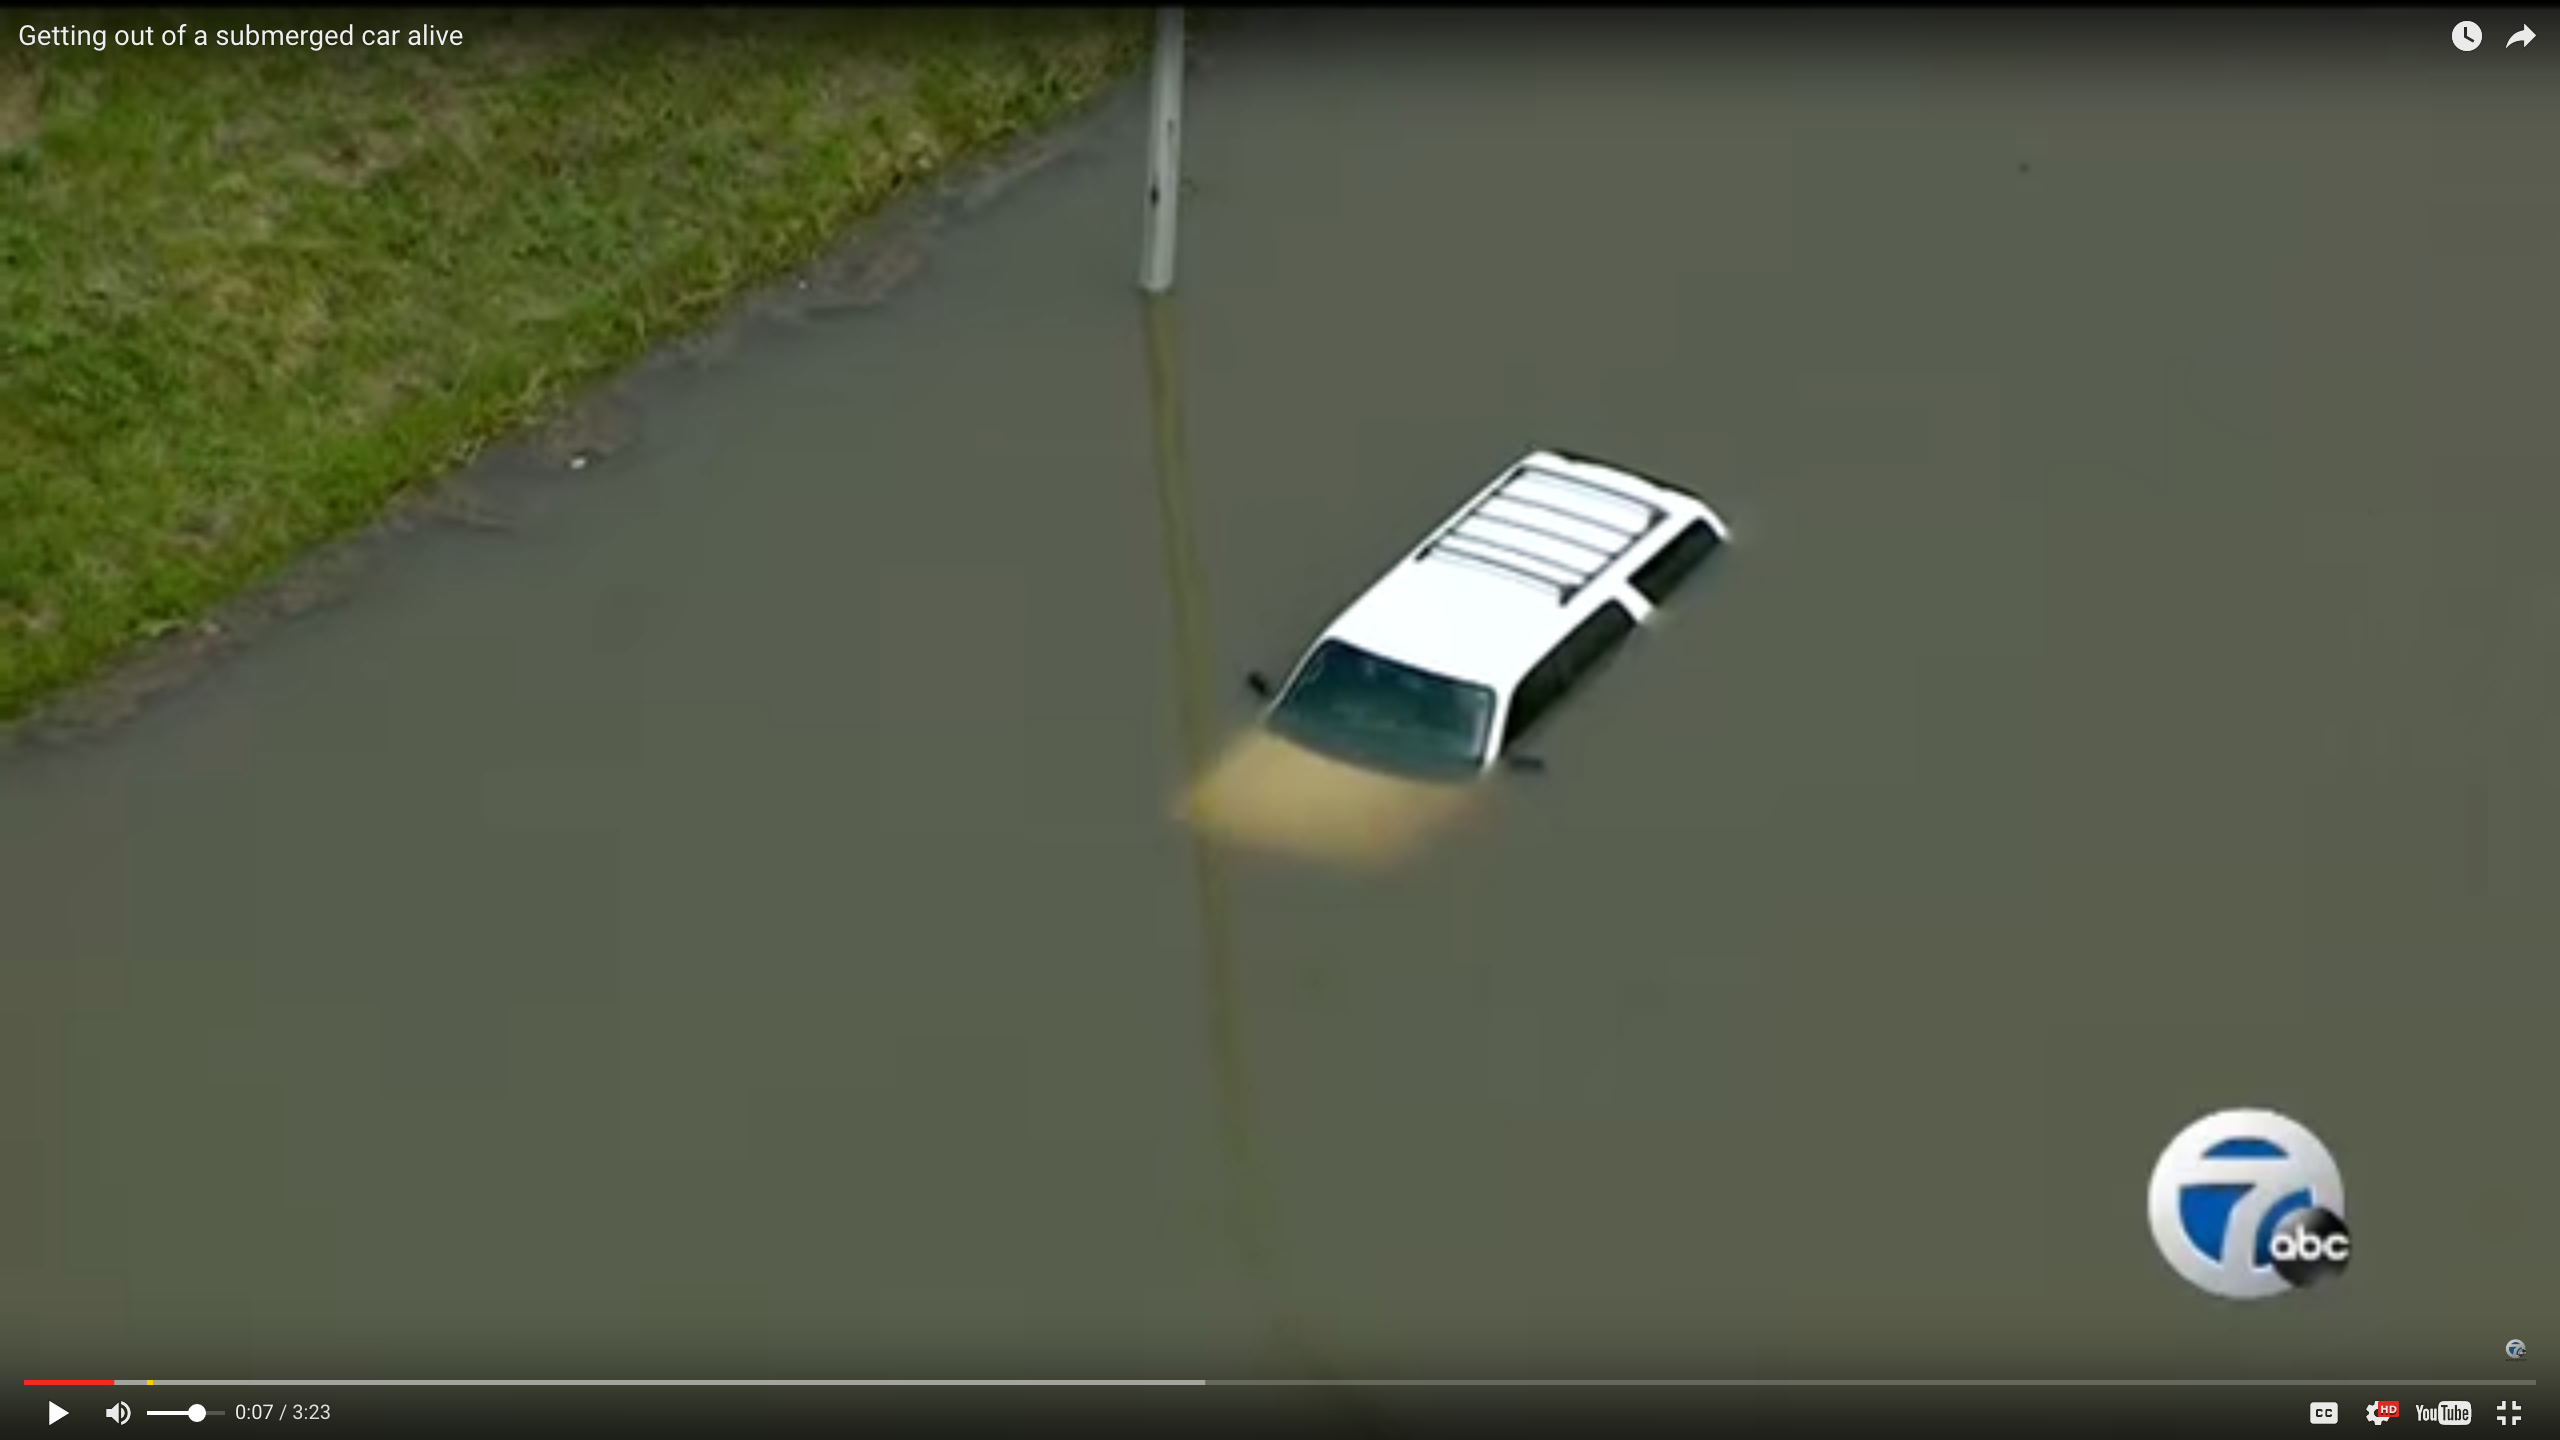 Video Safety Tip: Escaping a Submerged Vehicle